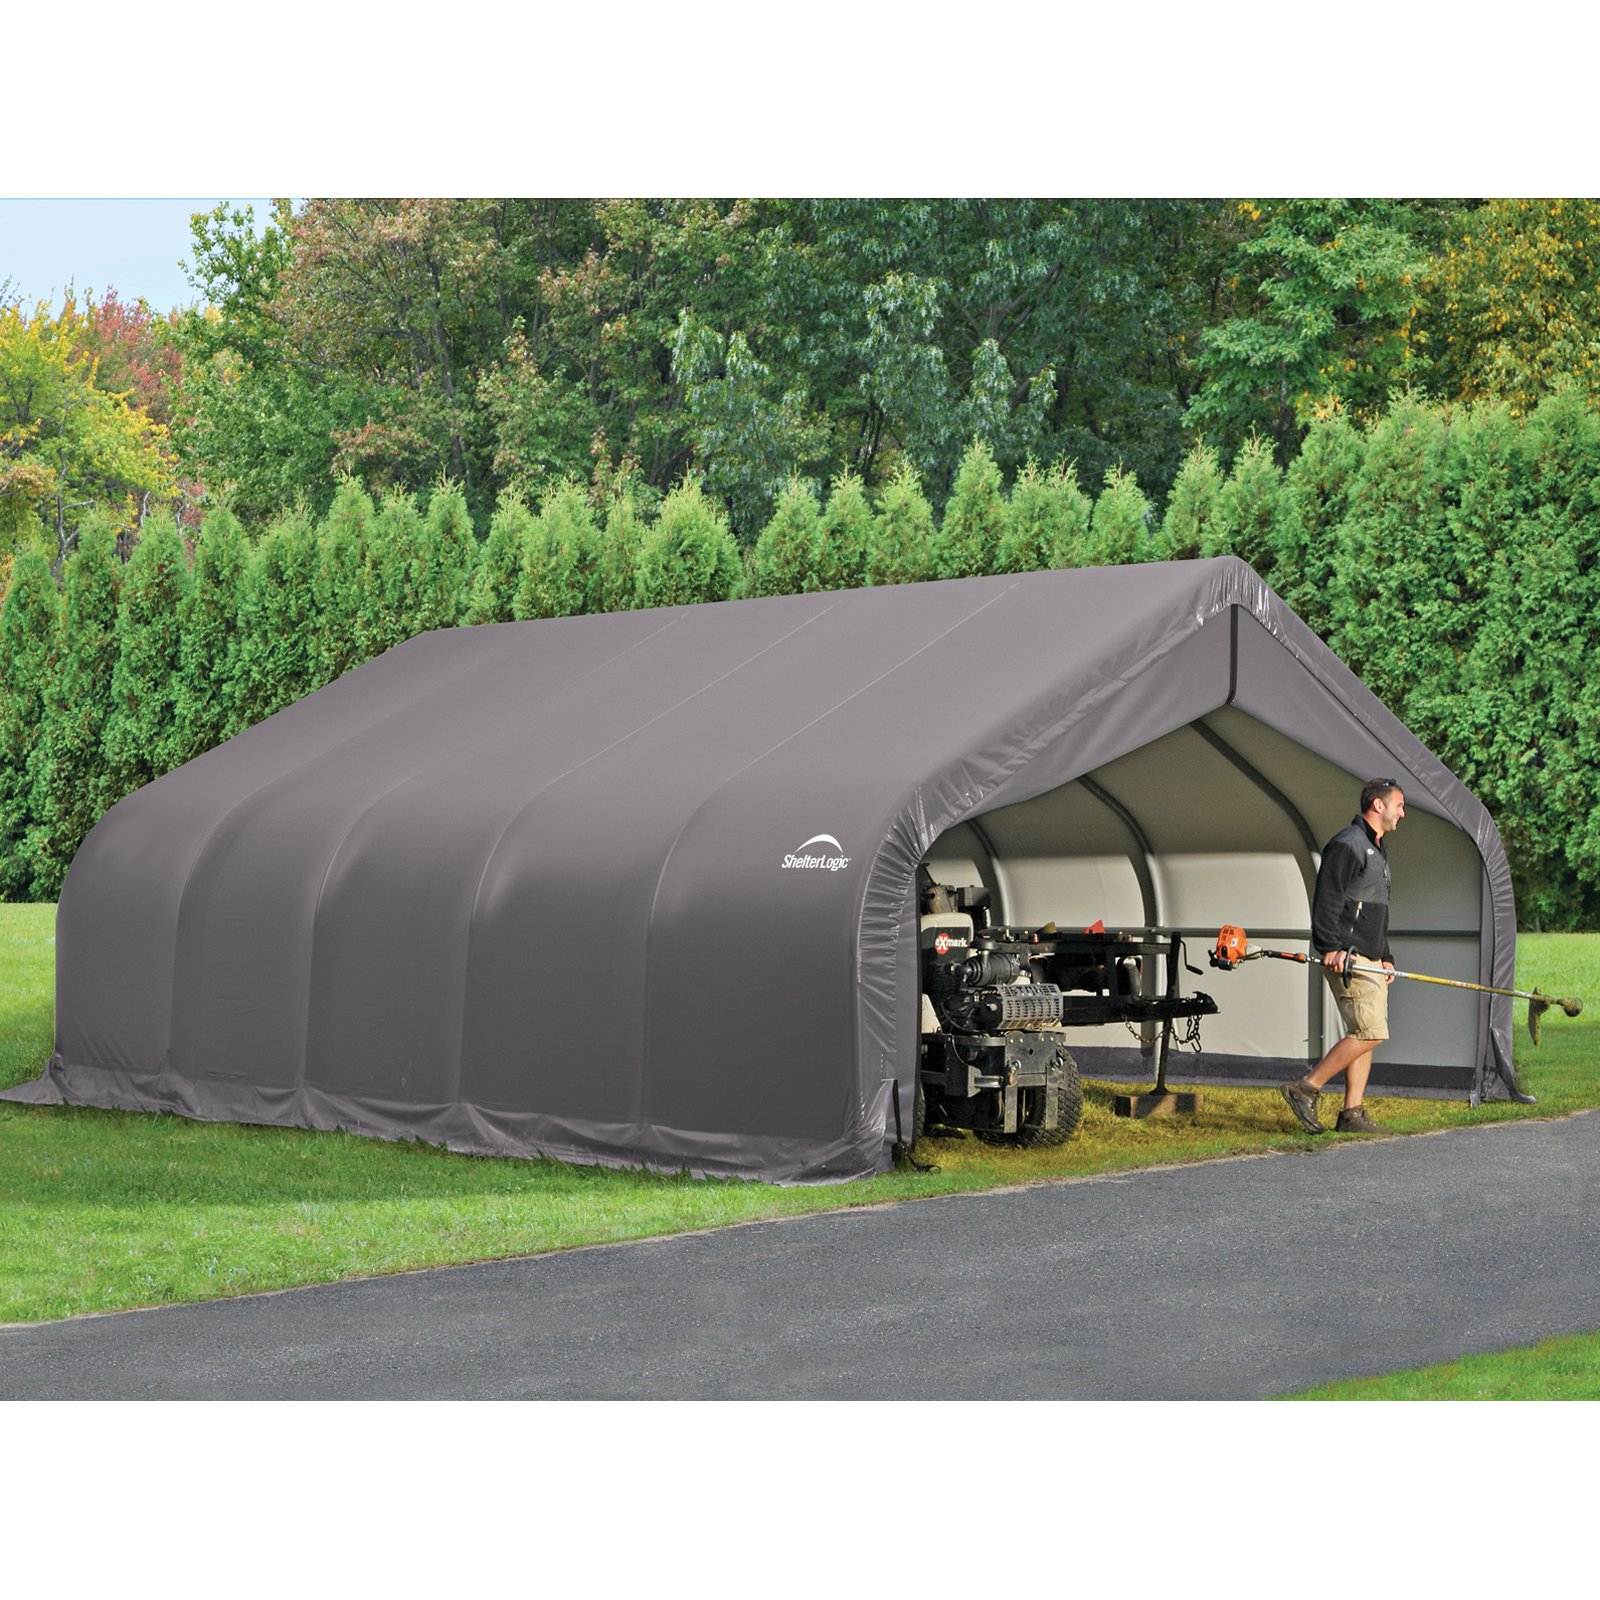 ShelterLogic 18' x 28' x 9' Peak Style Shelter, Green